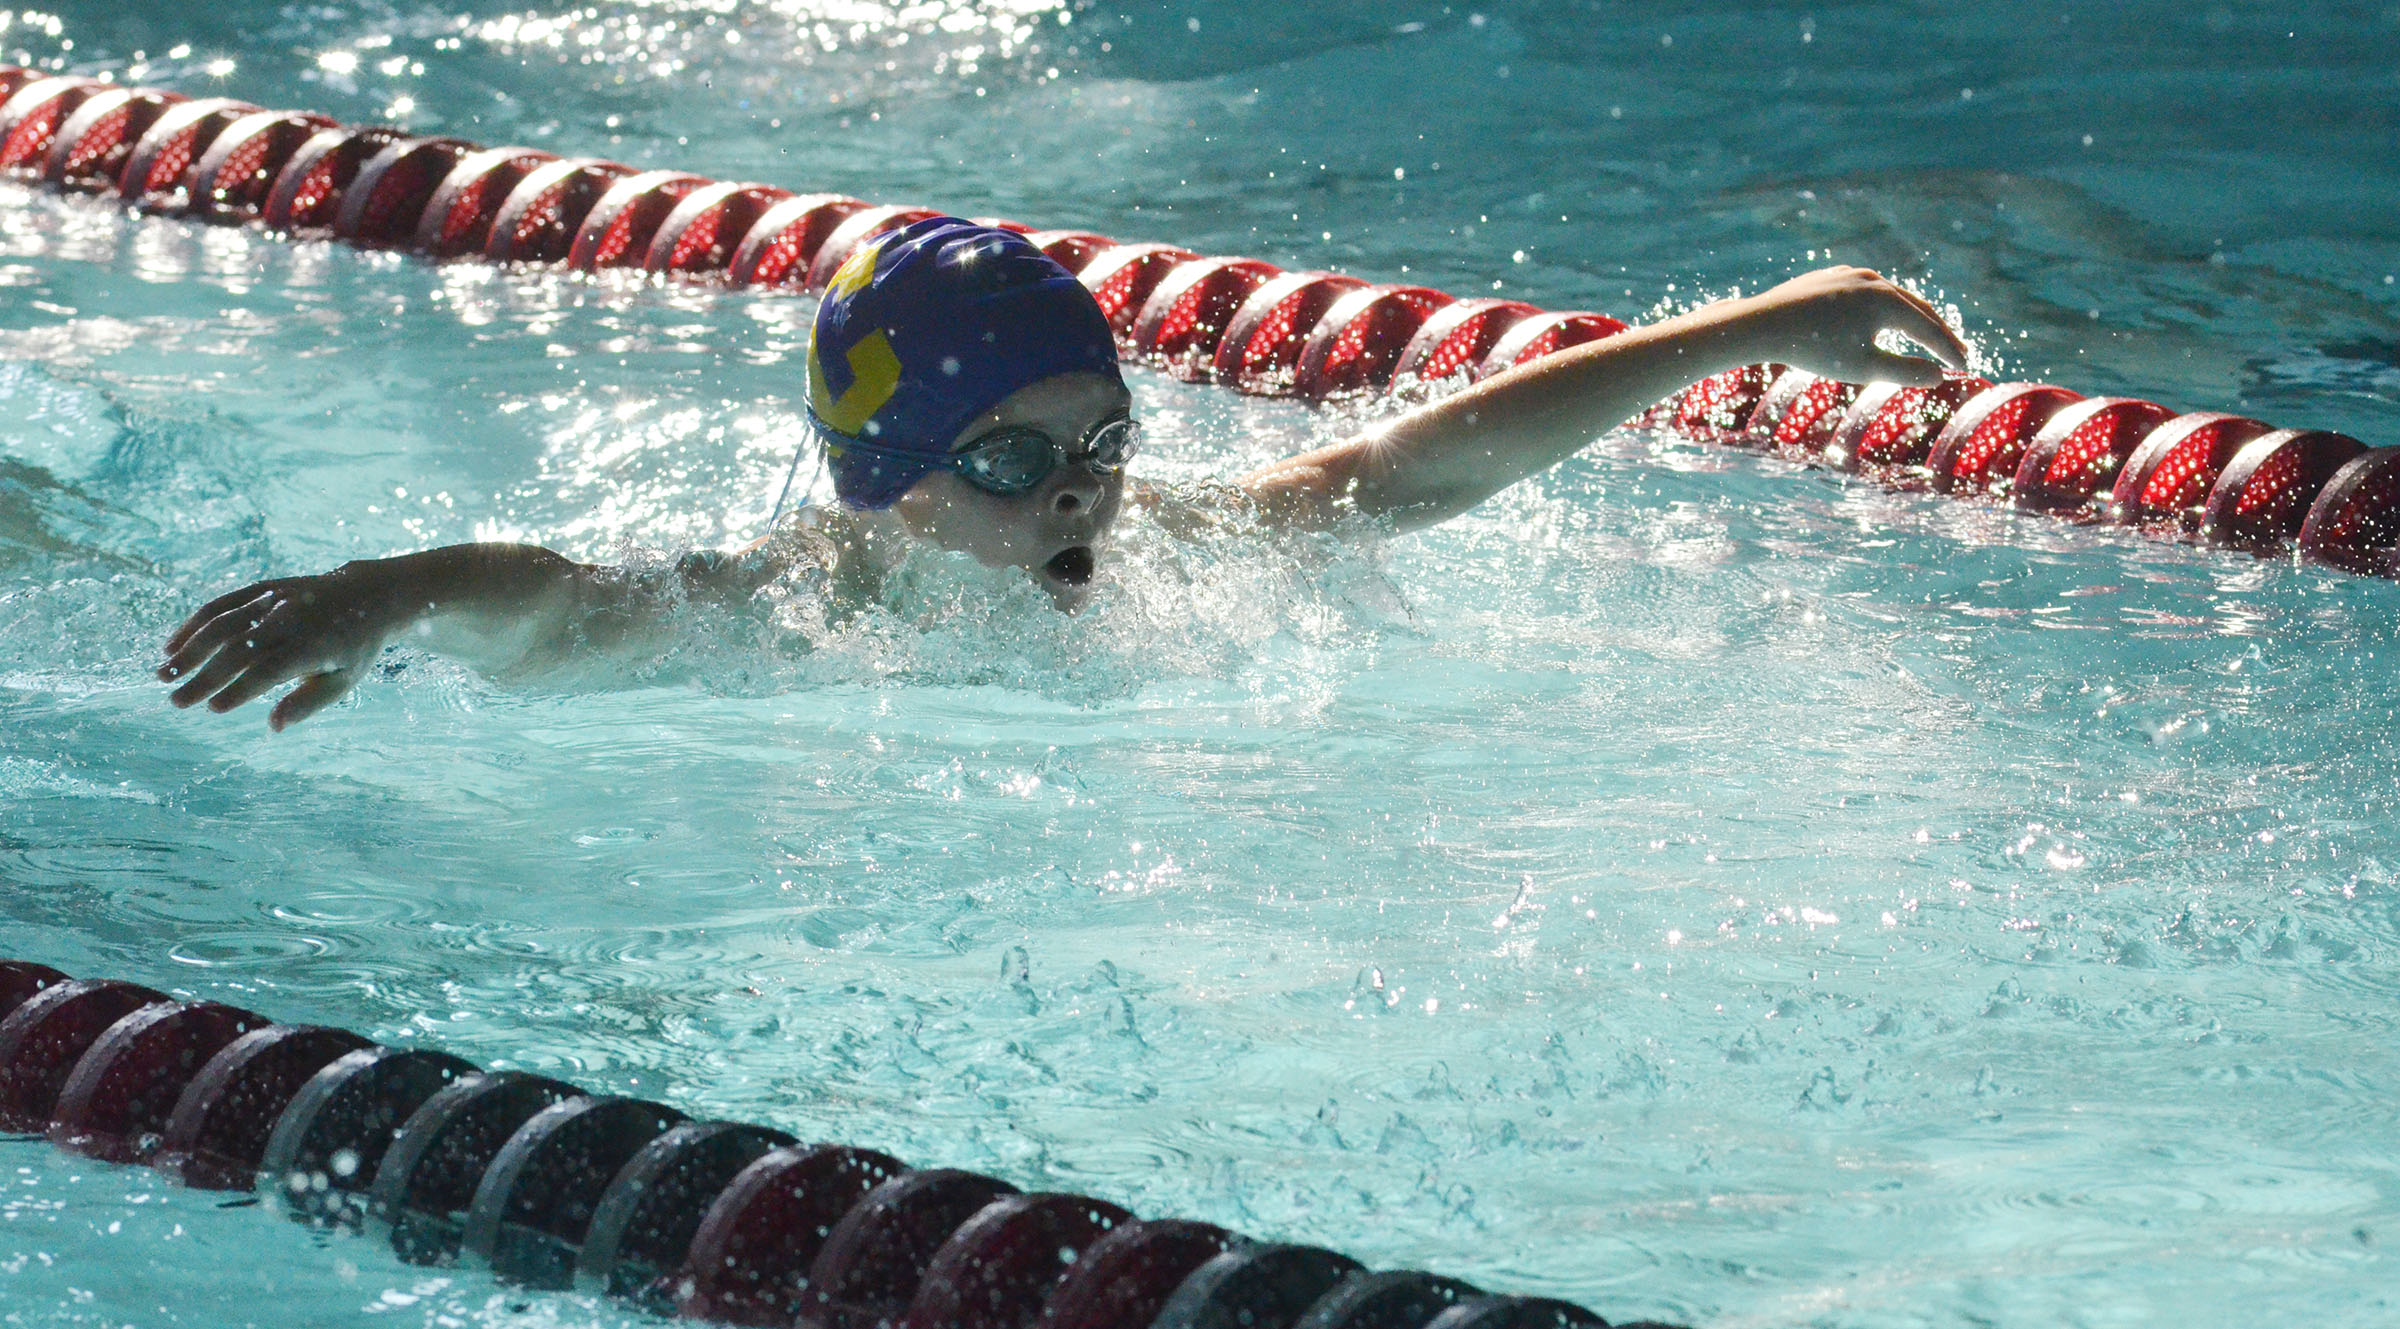 Campbellsville Middle School fifth-grader Caleb Holt swims.